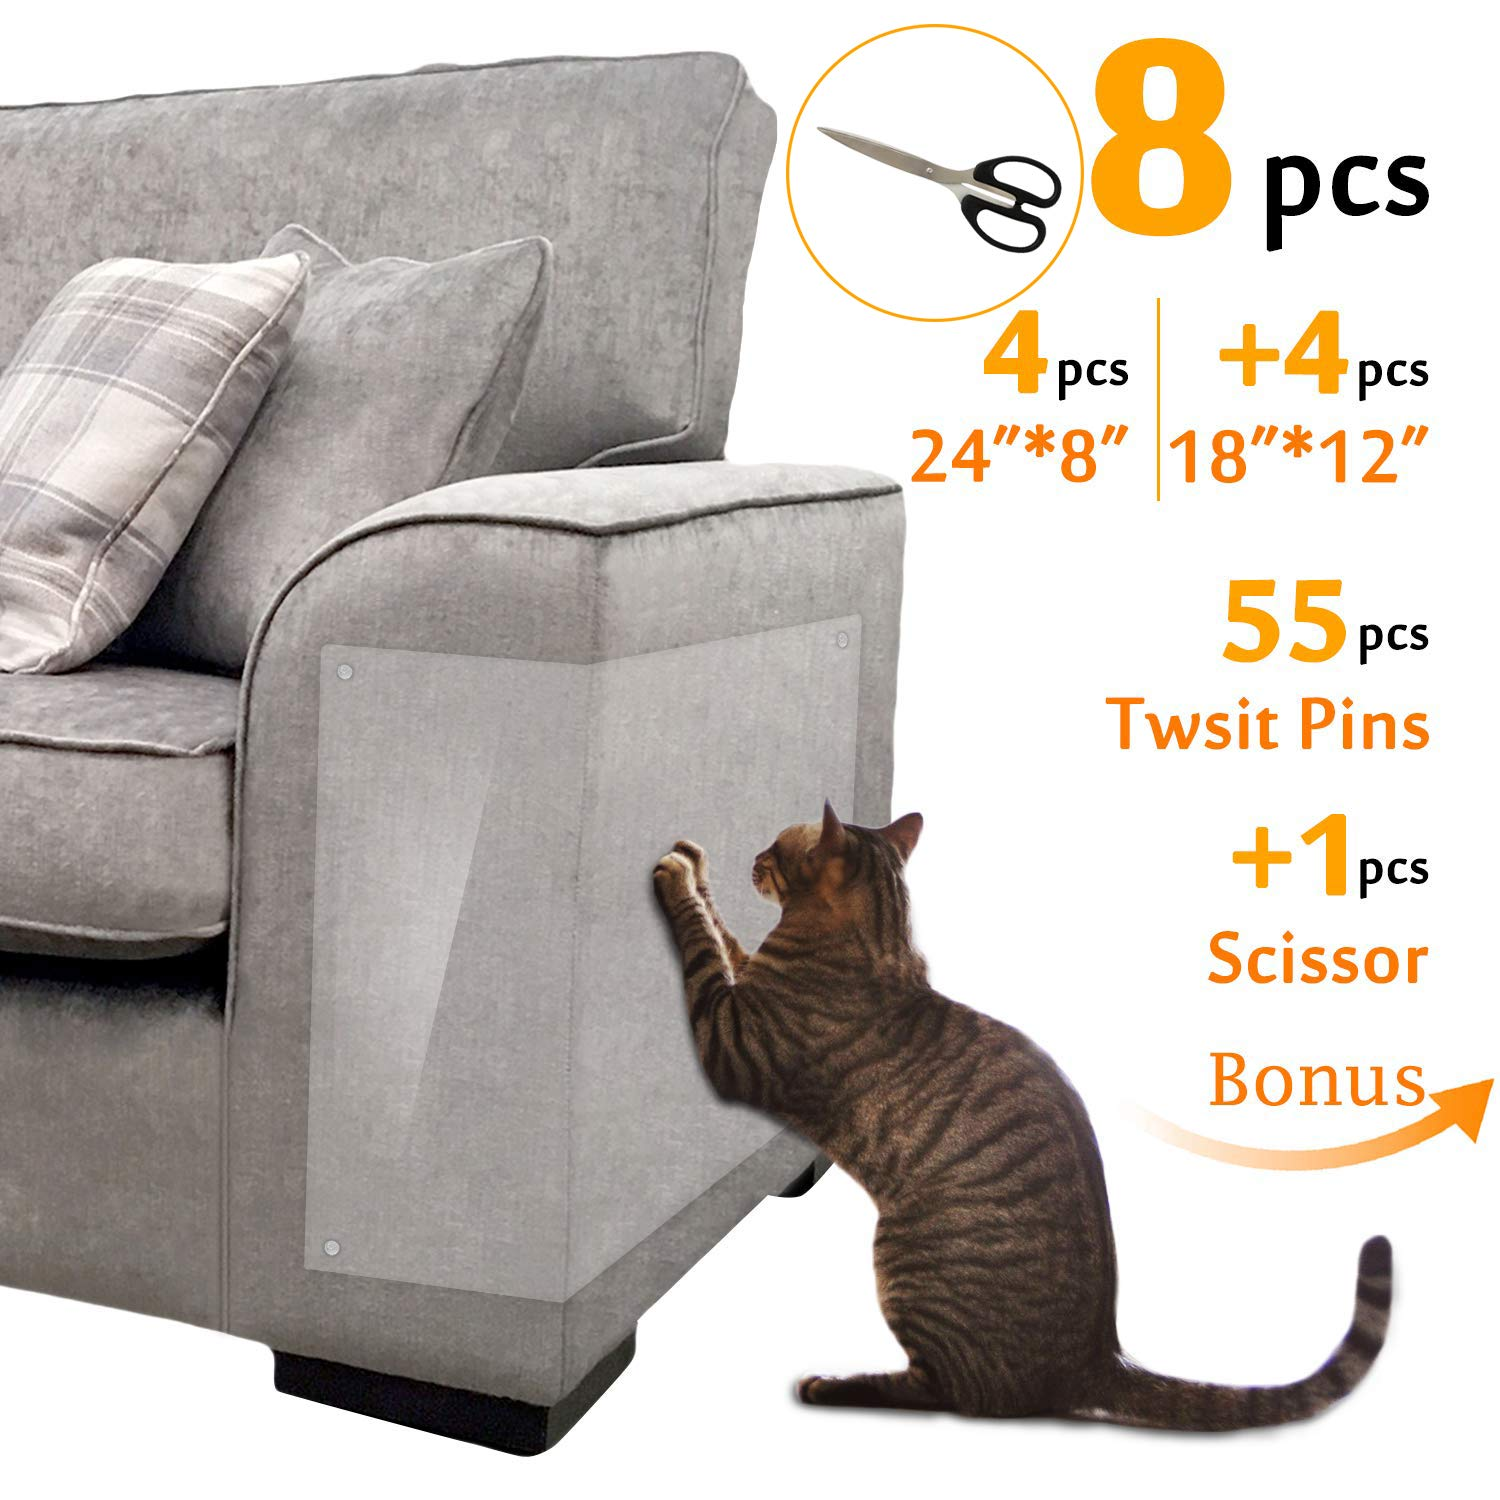 Hake's Toys Furniture Protectors from Cats  Couch Cover  Scissors of Bonus  4pcs 24''L8''W+4pcs 18''L12''W+55pcs Twist Pins  Best Cat Scratch Deterrent for Leather Sofa Door and Chair by Hake's Toys